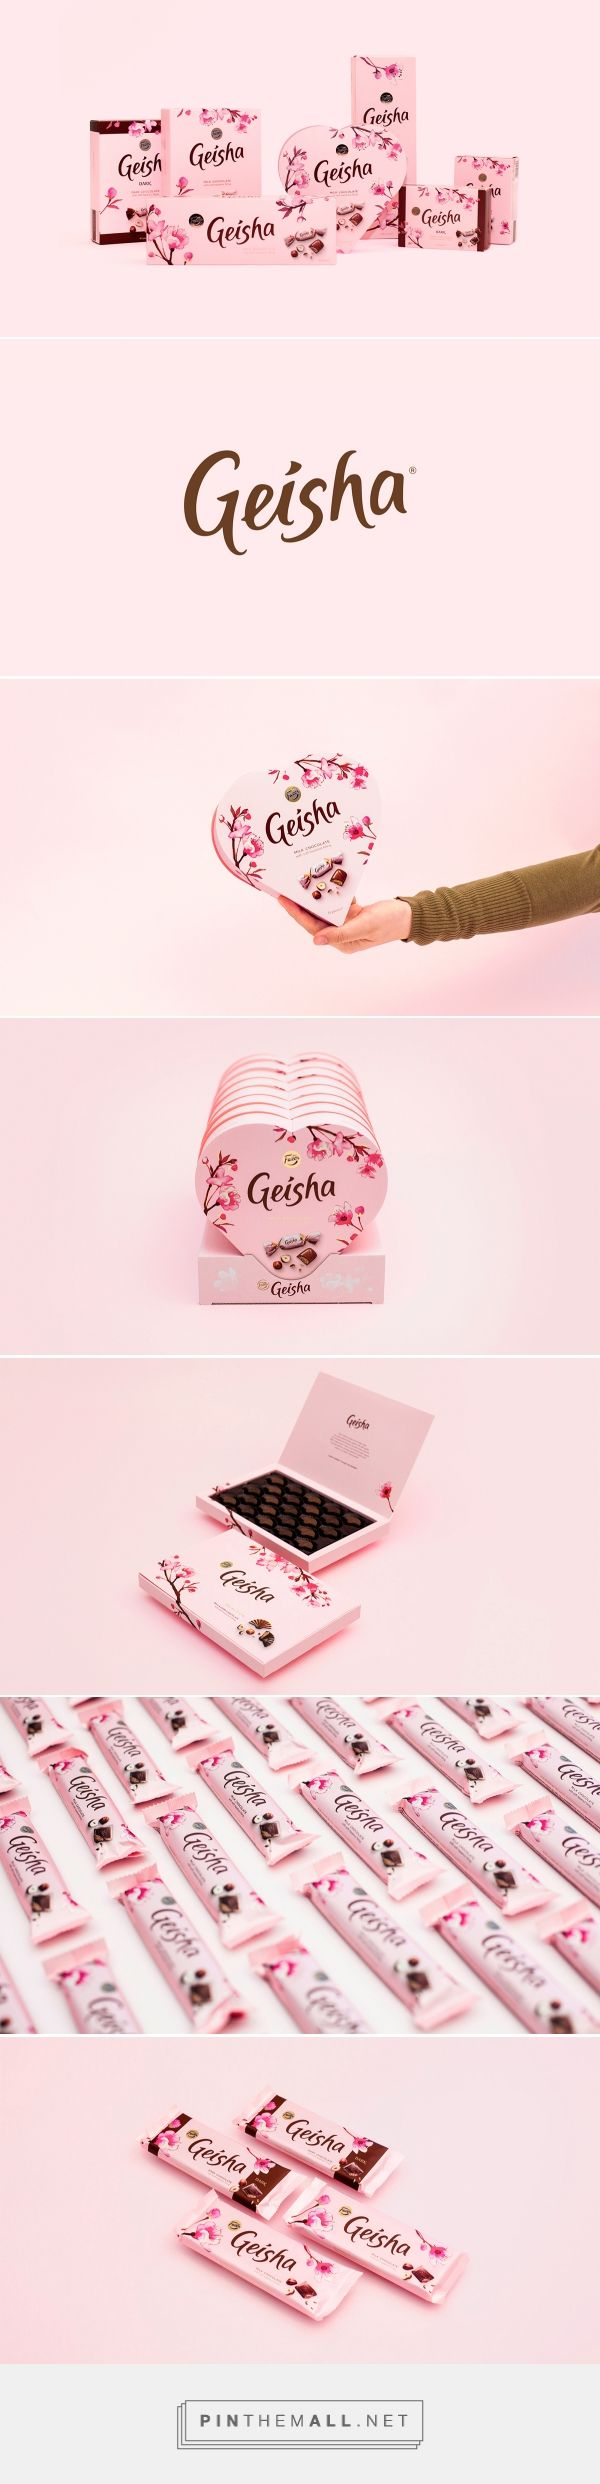 Fazer Geisha Chocolate Branding and Packaging by Pentagon Design | Fivestar Branding Agency – Design and Branding Agency & Inspiration Gallery